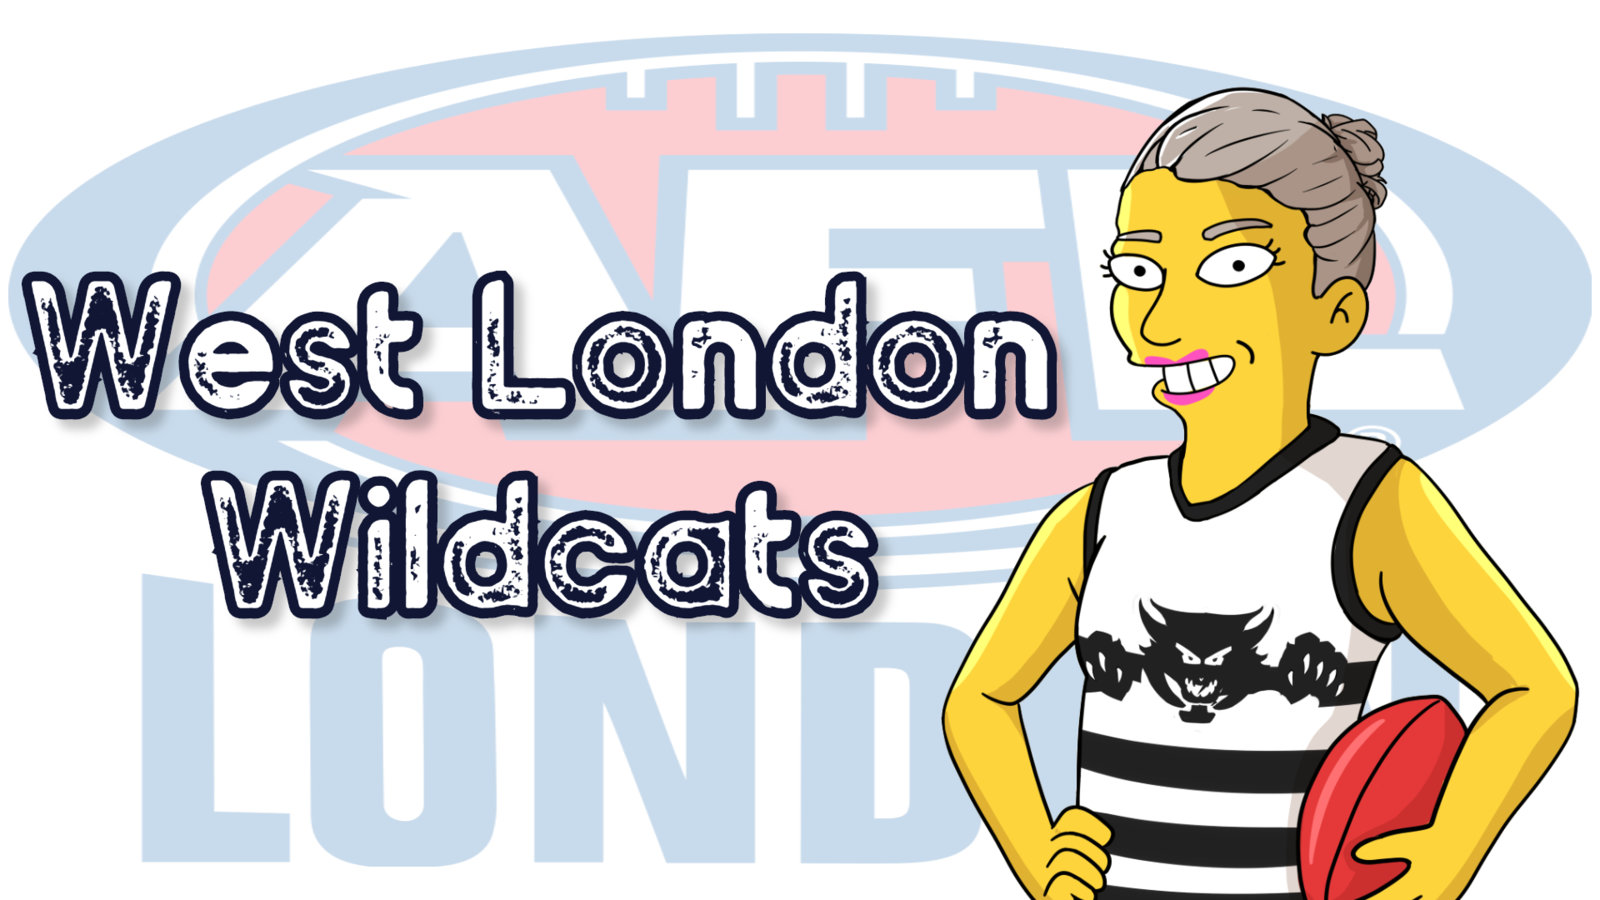 AFL Europe 2020 - West London Wildcats.jpg